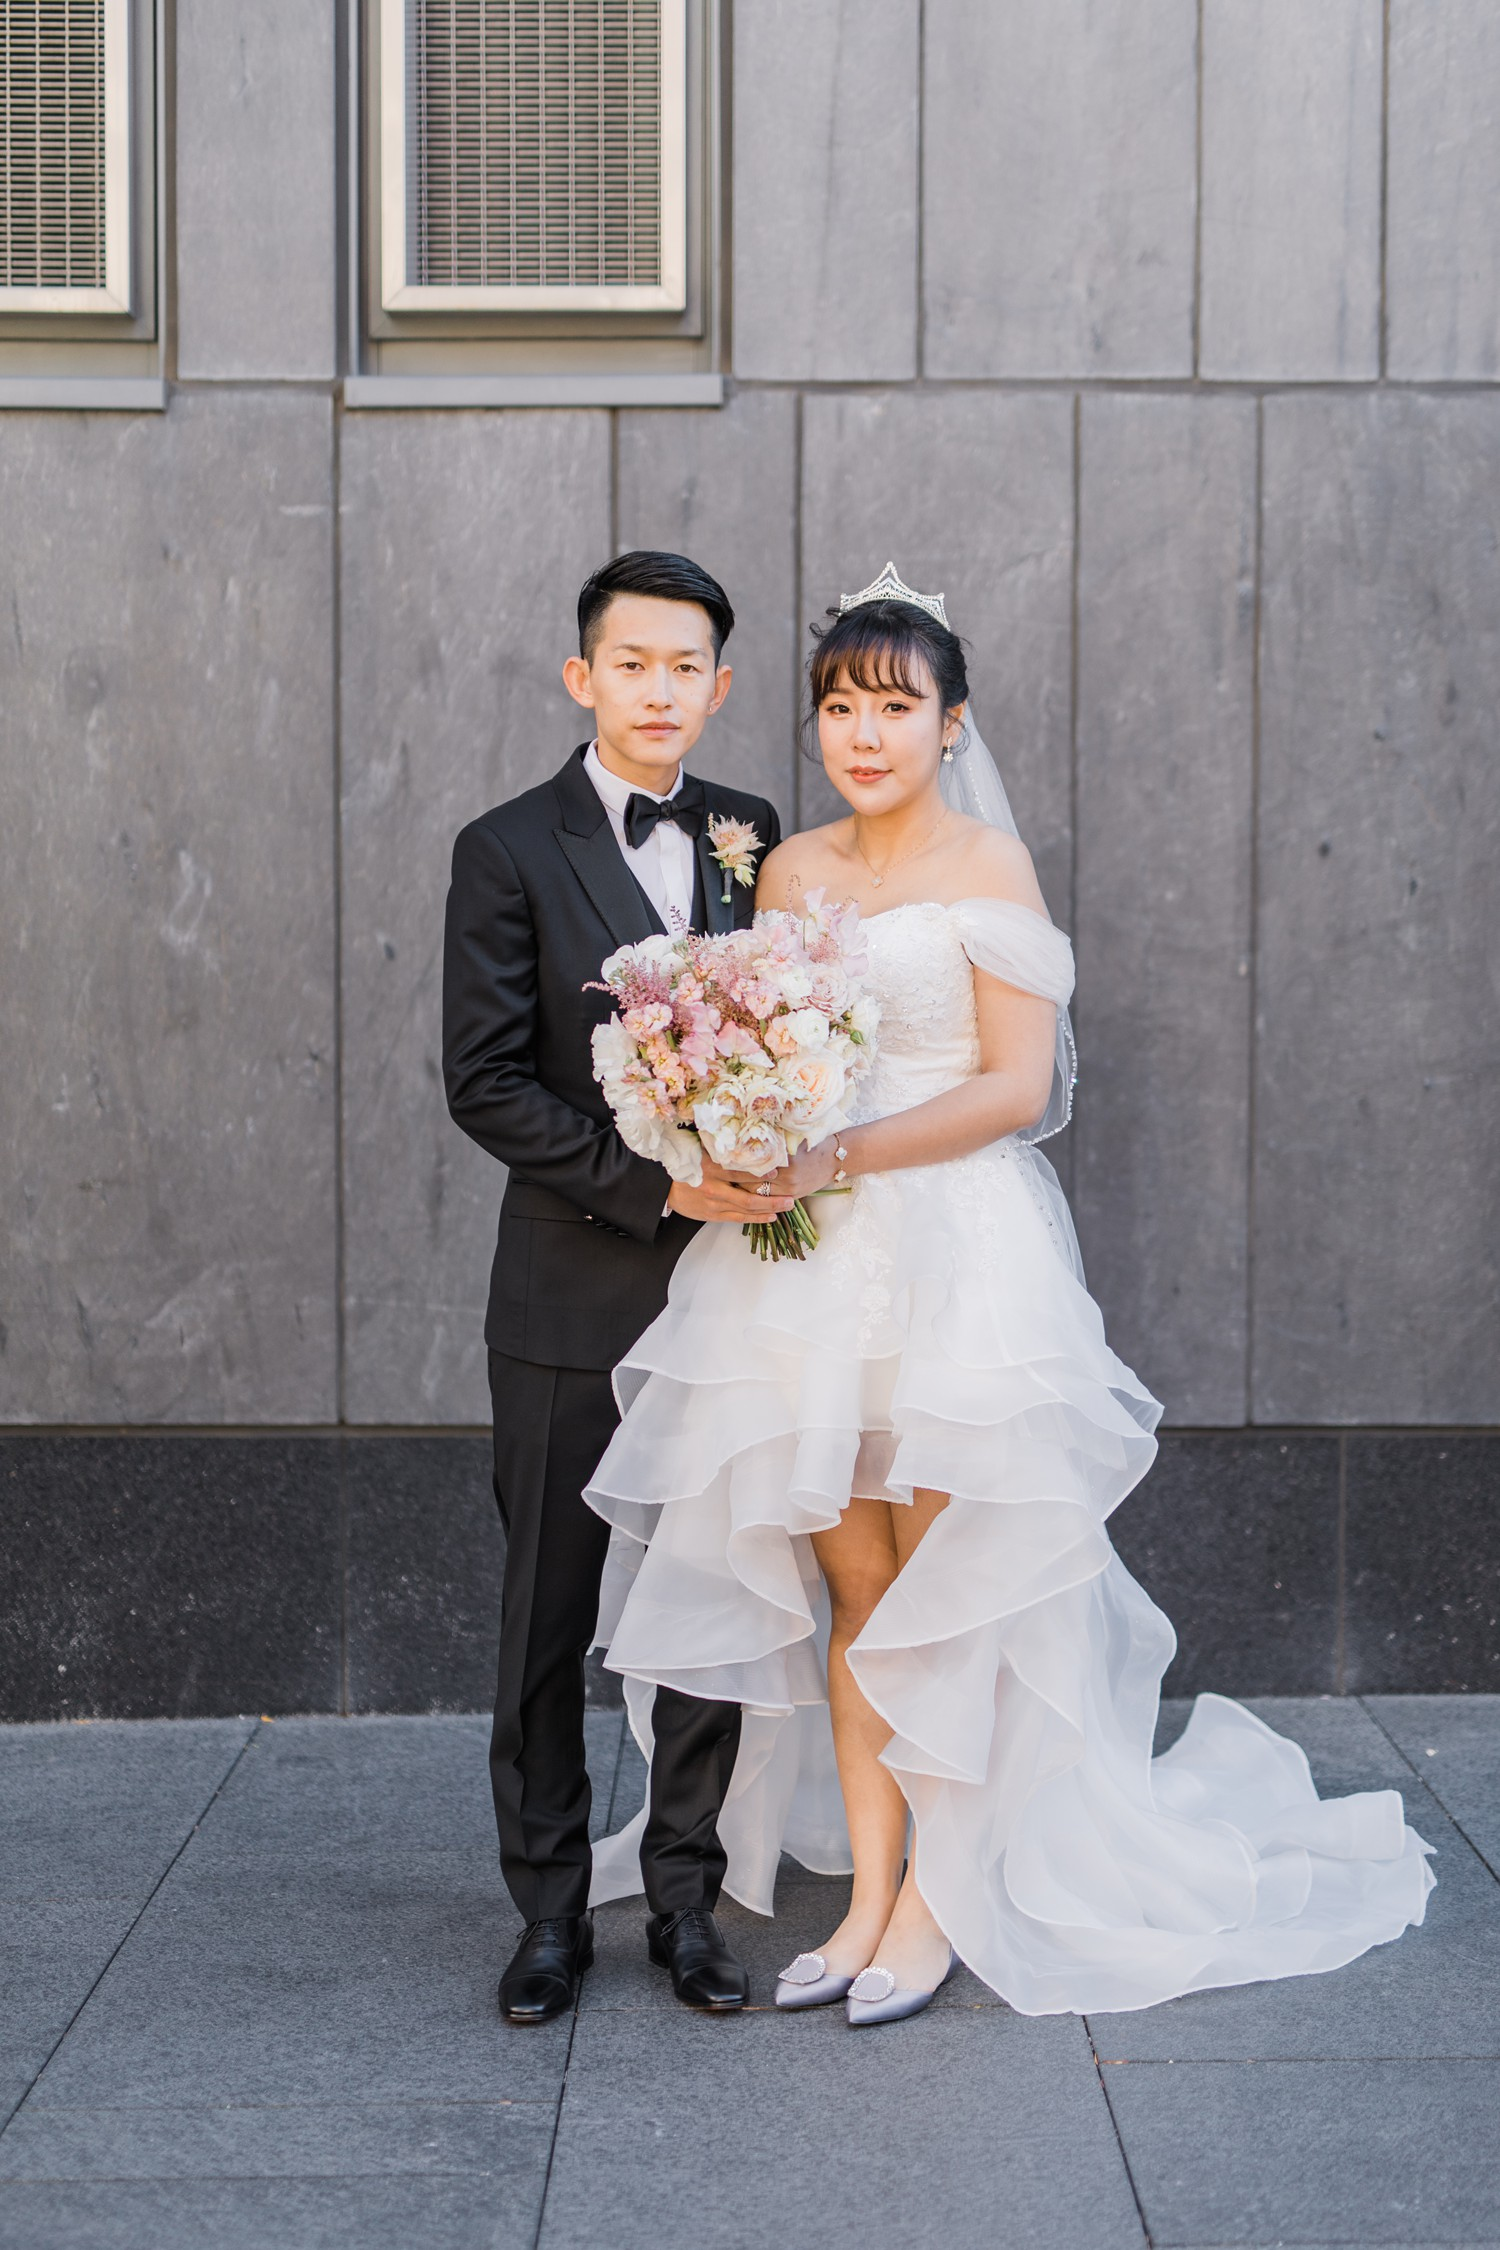 Wedding Portraits with Roger Vivier Flats at Luxury Yorkville Vinci Toronto Four Season Hotel Wedding Photos with Chinese Bride and Groom